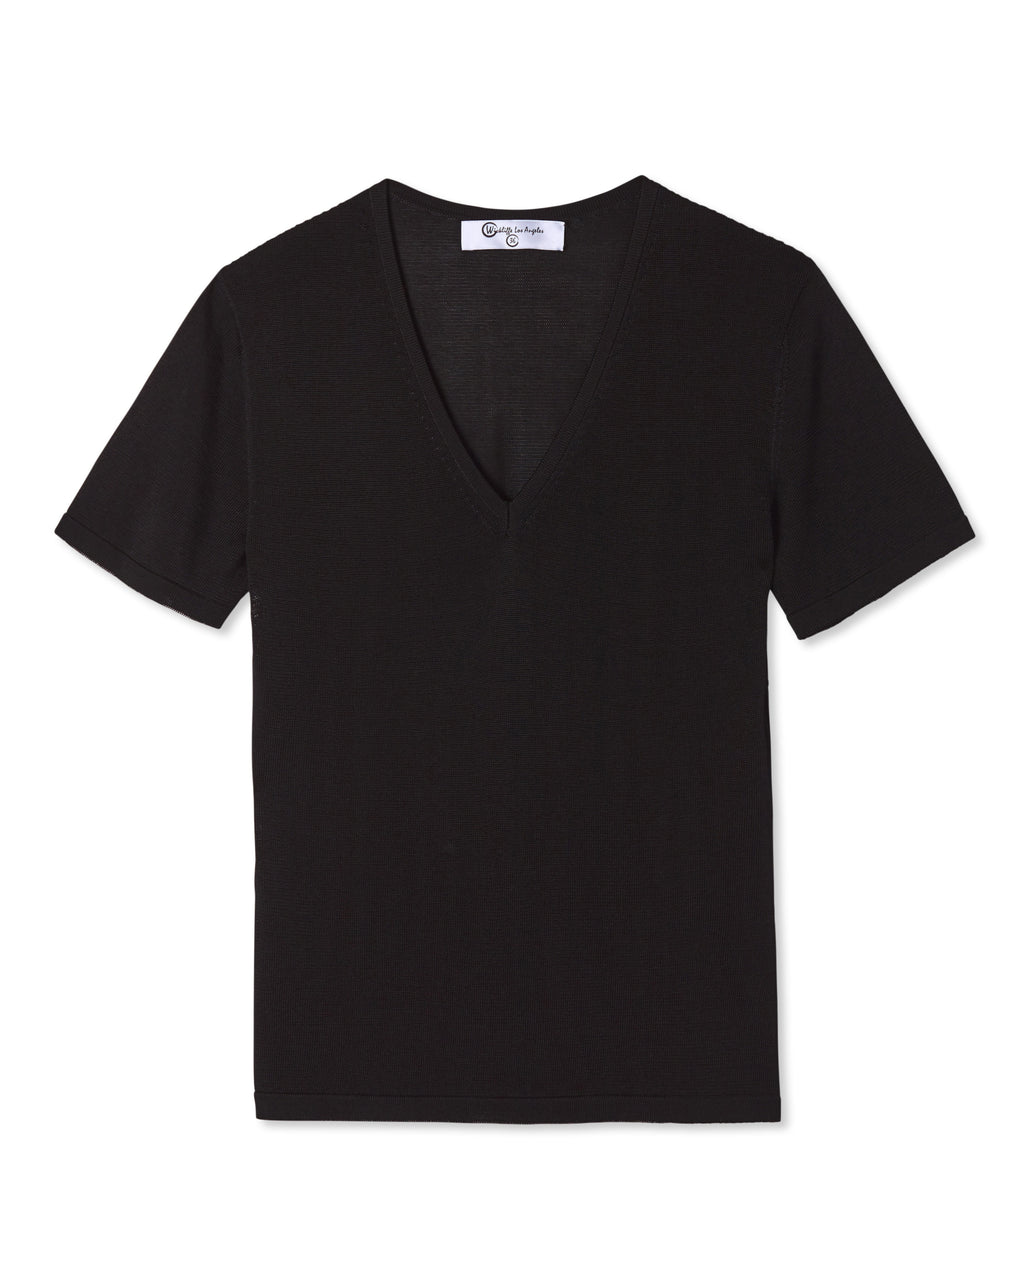 VALEN V-NECK SHIRT